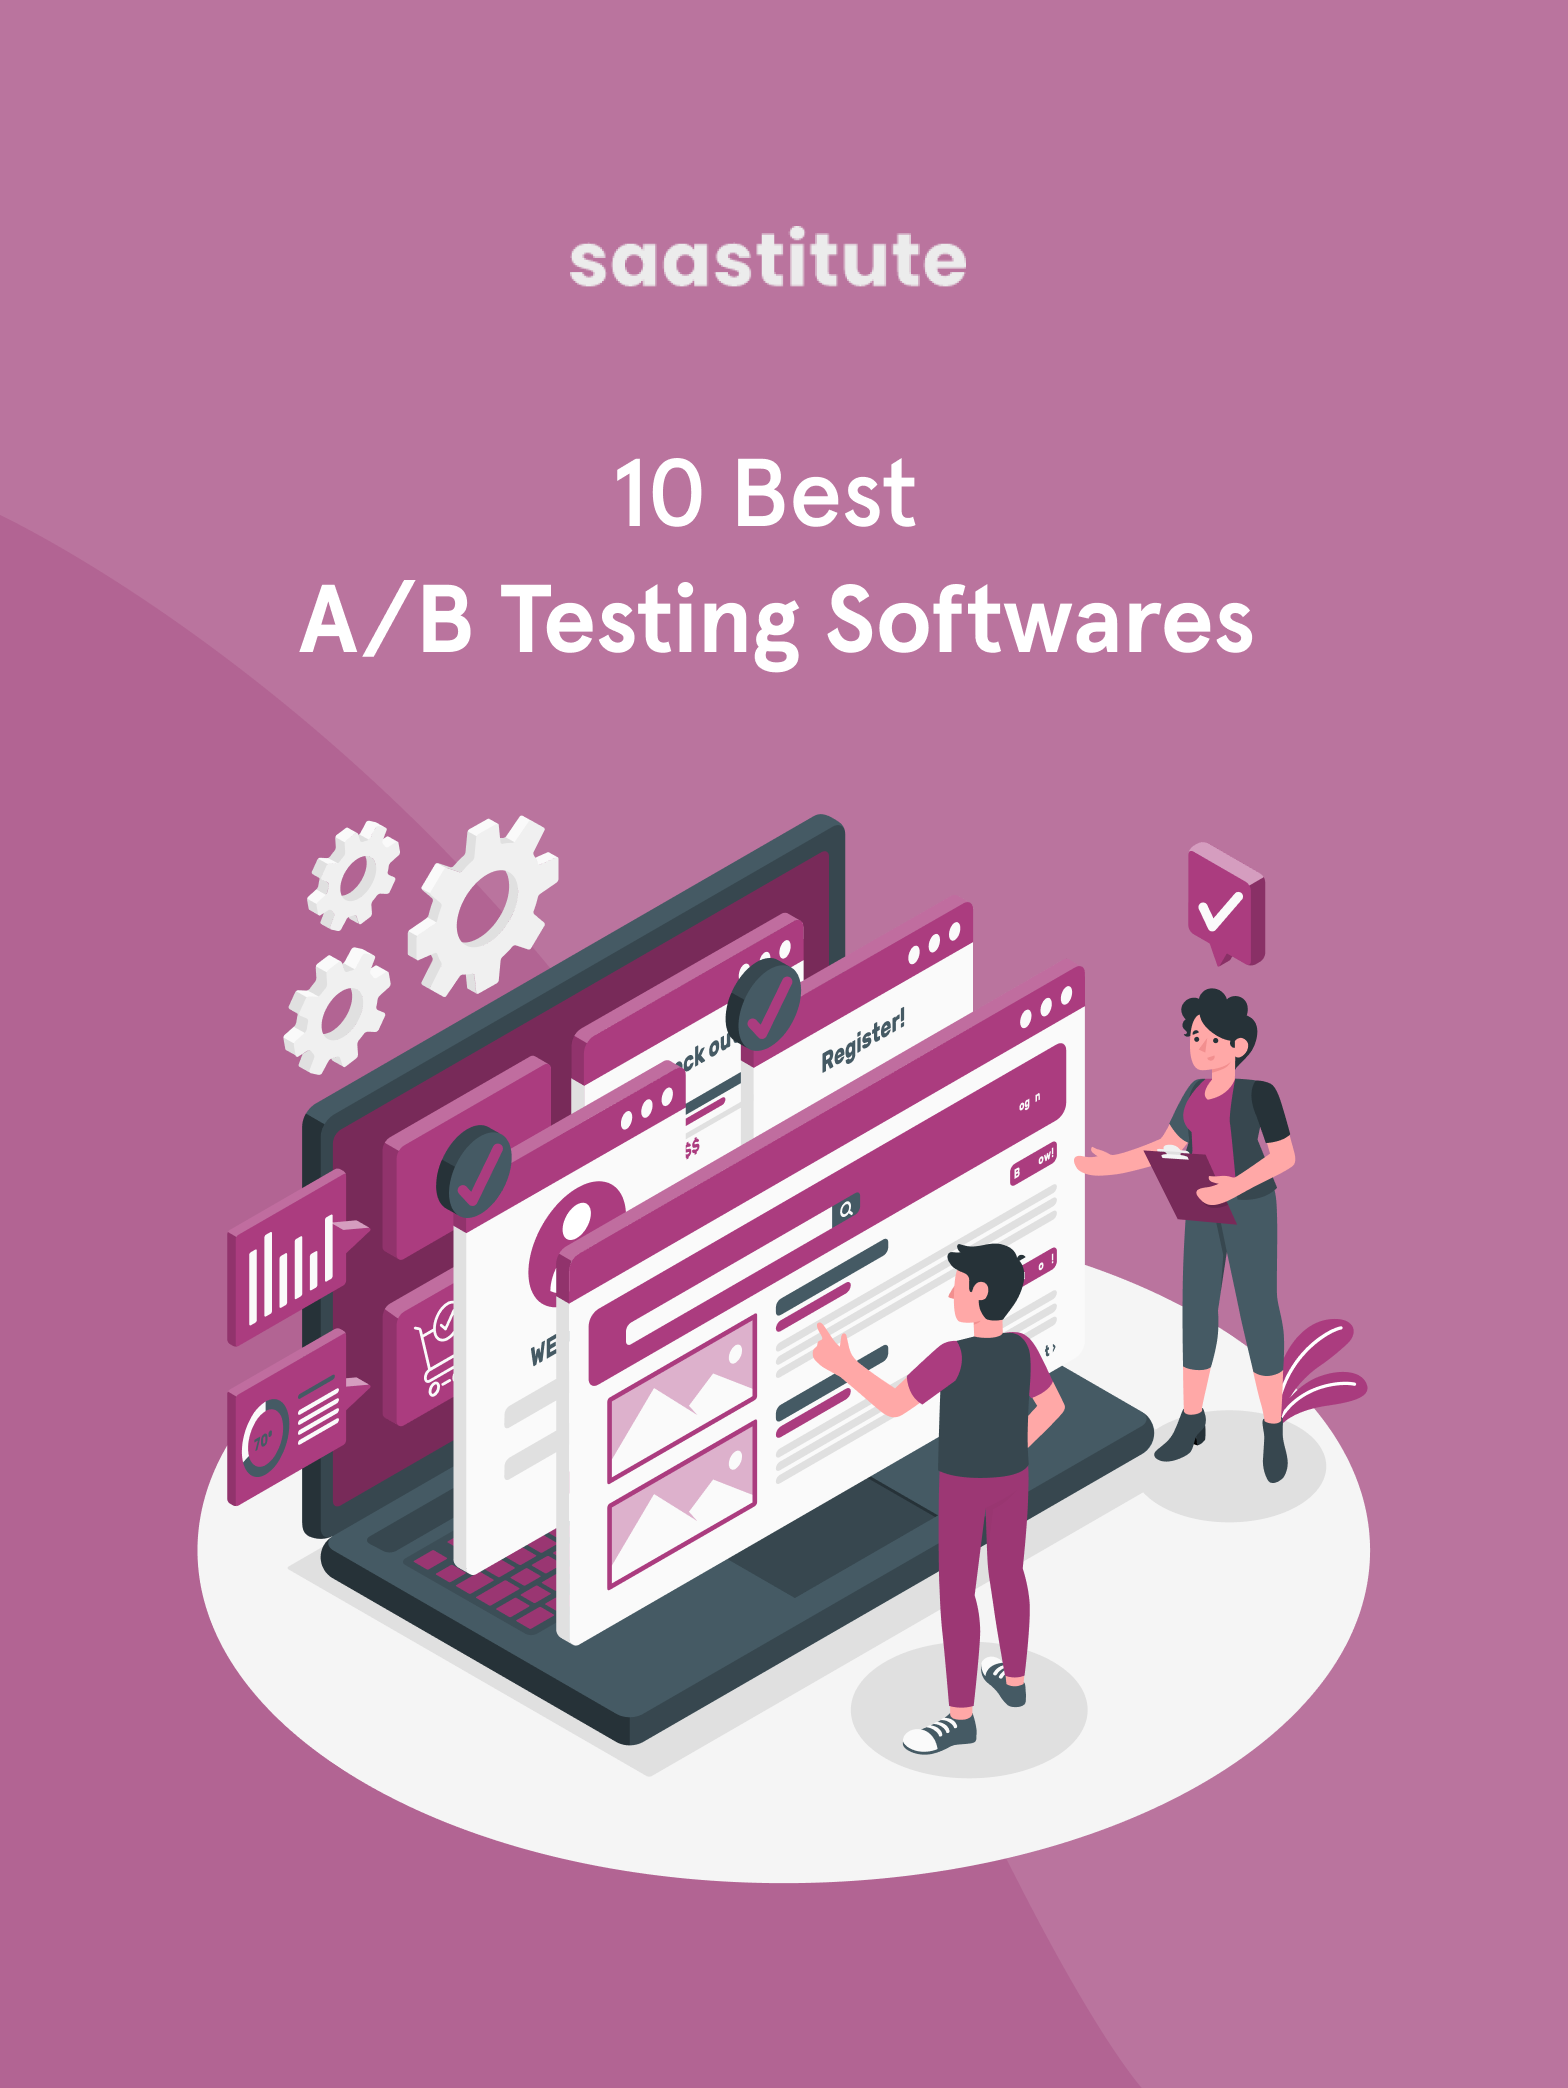 10 Best A/B Testing Tools For Your Business